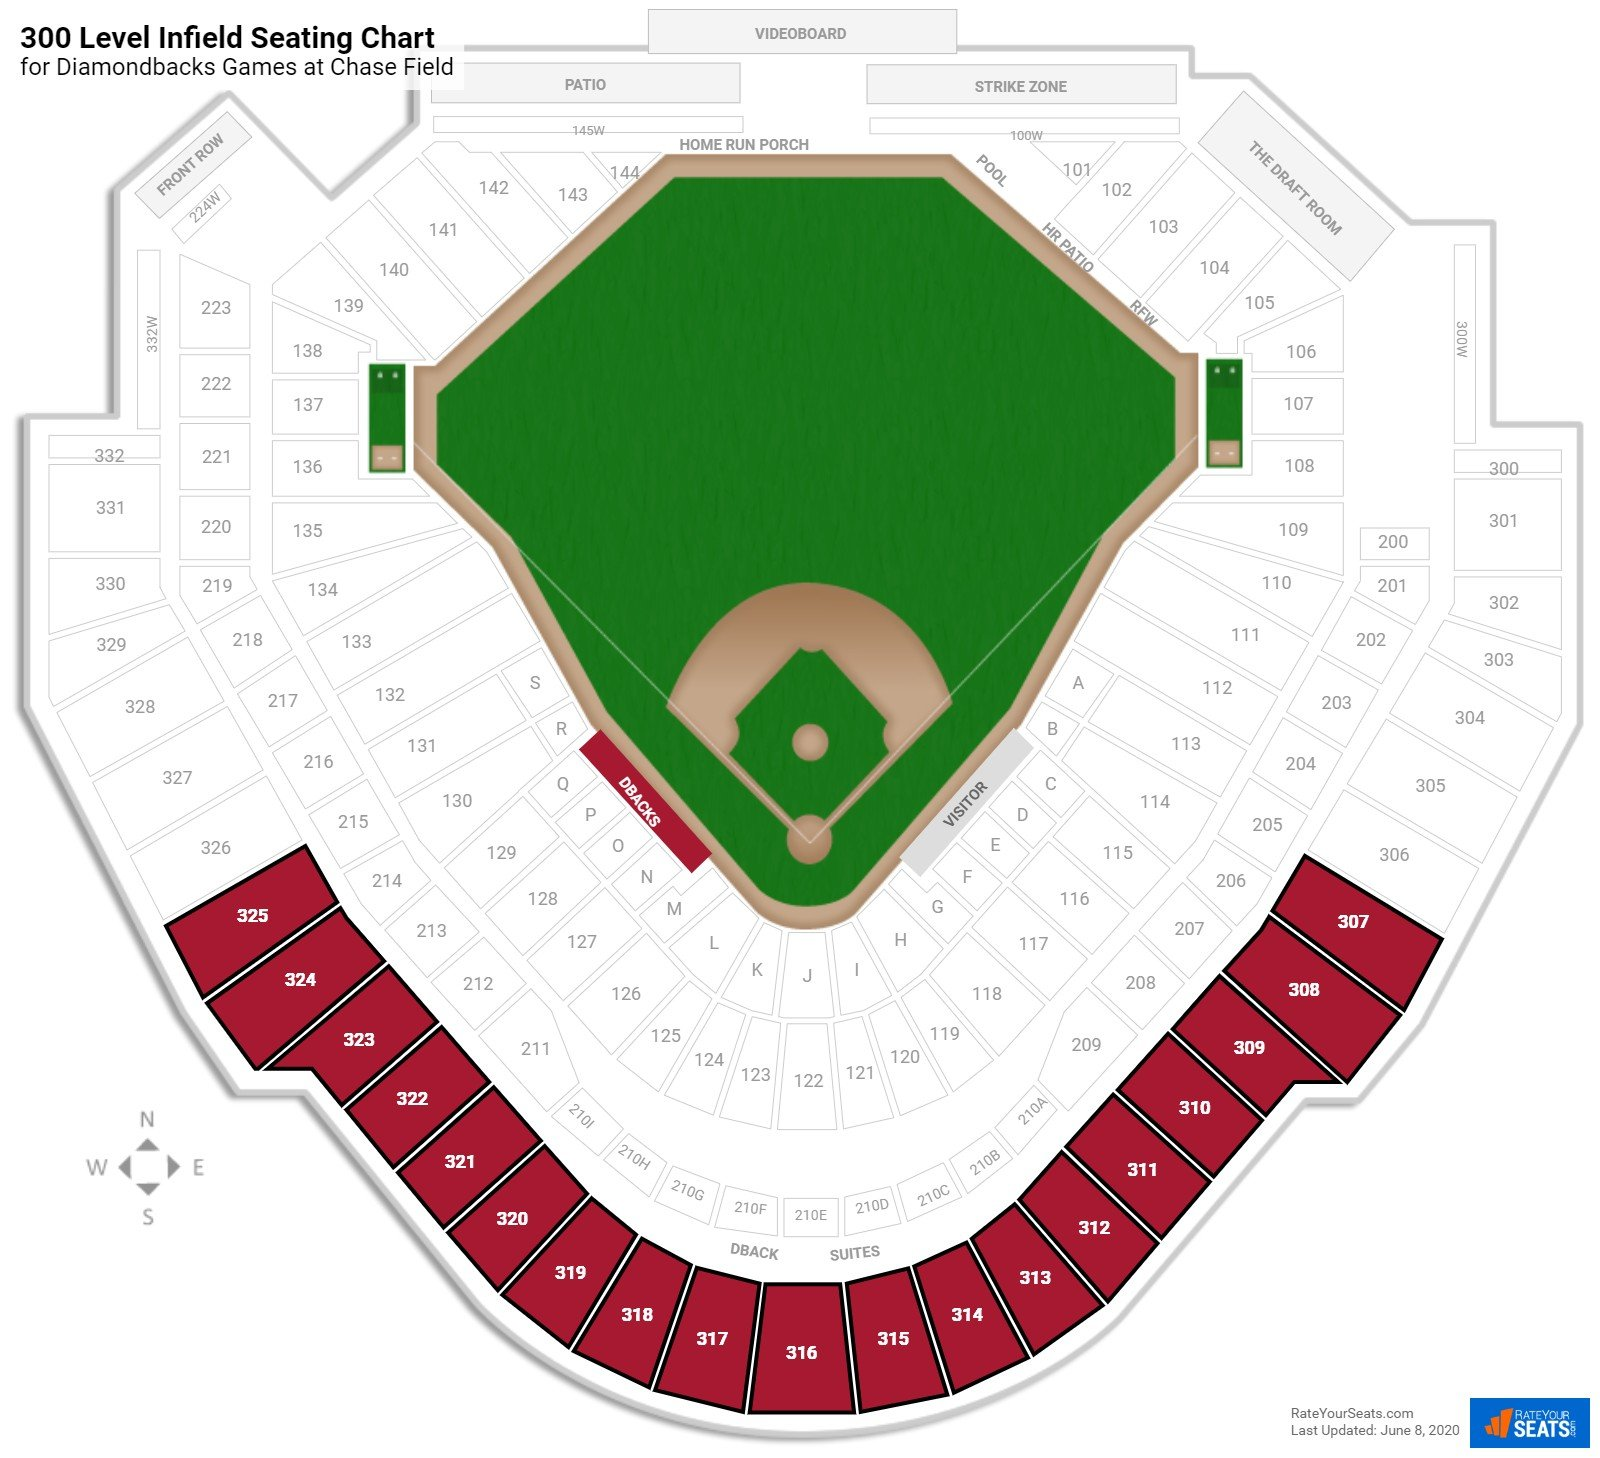 Chase Field 300 Level Infield seating chart